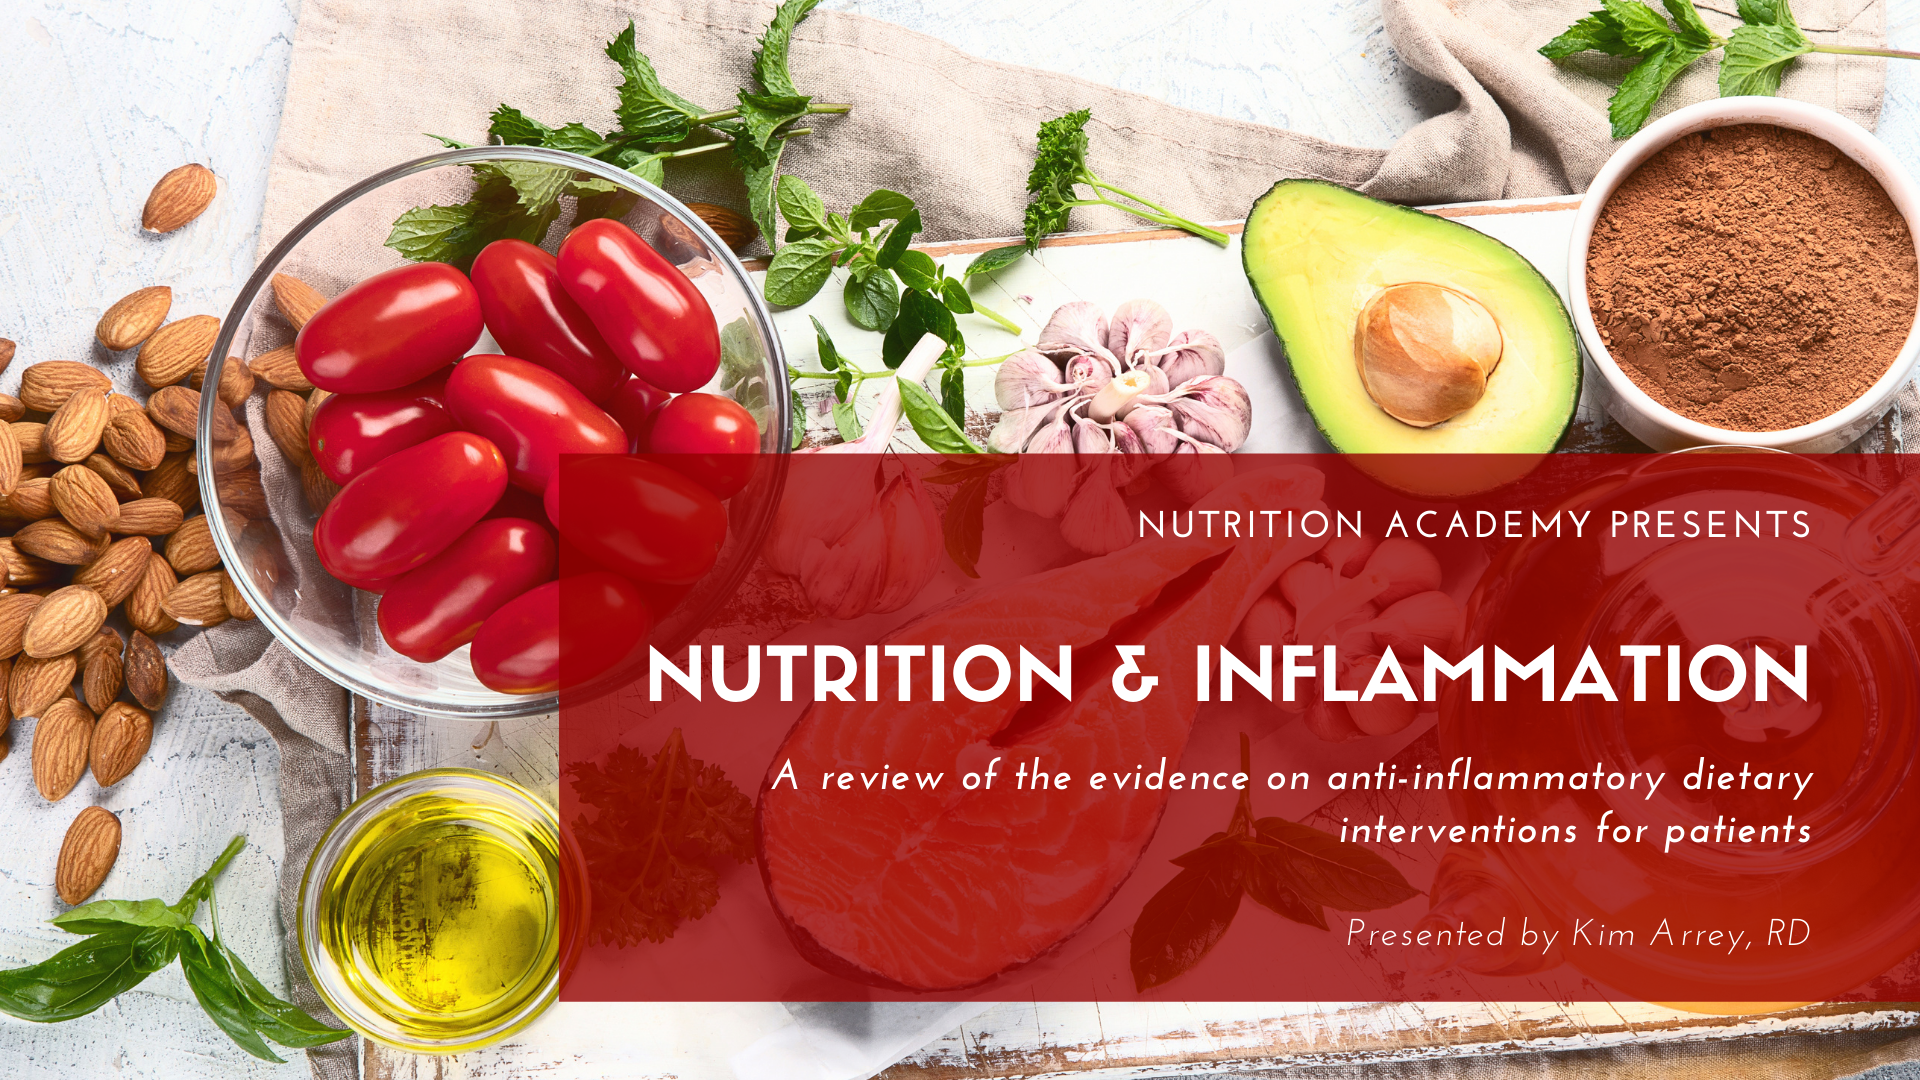 Nutrition & Inflammation